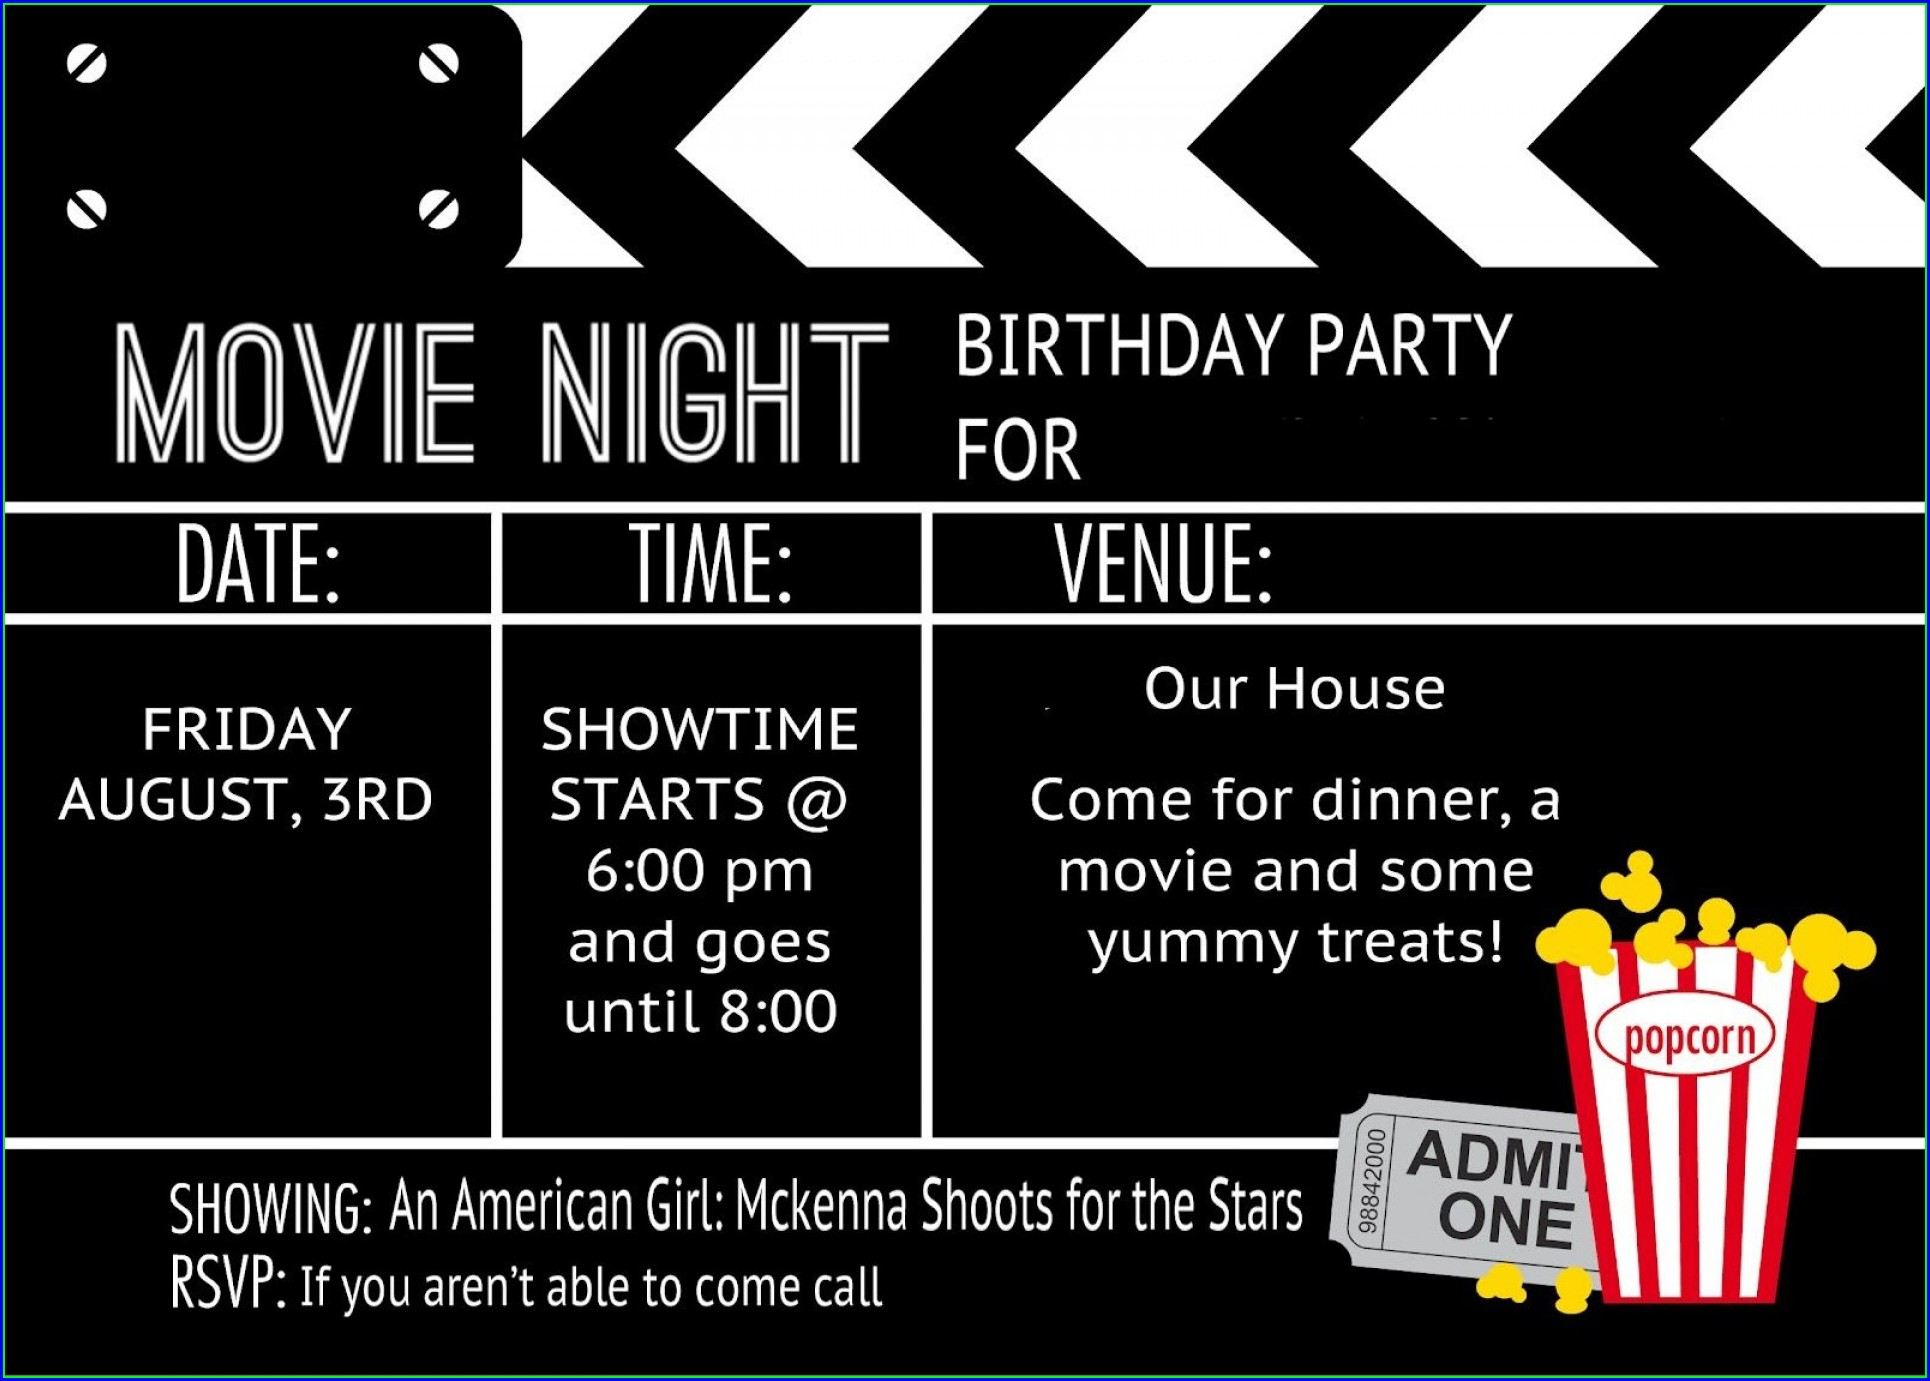 Blank Movie Night Invitation Template